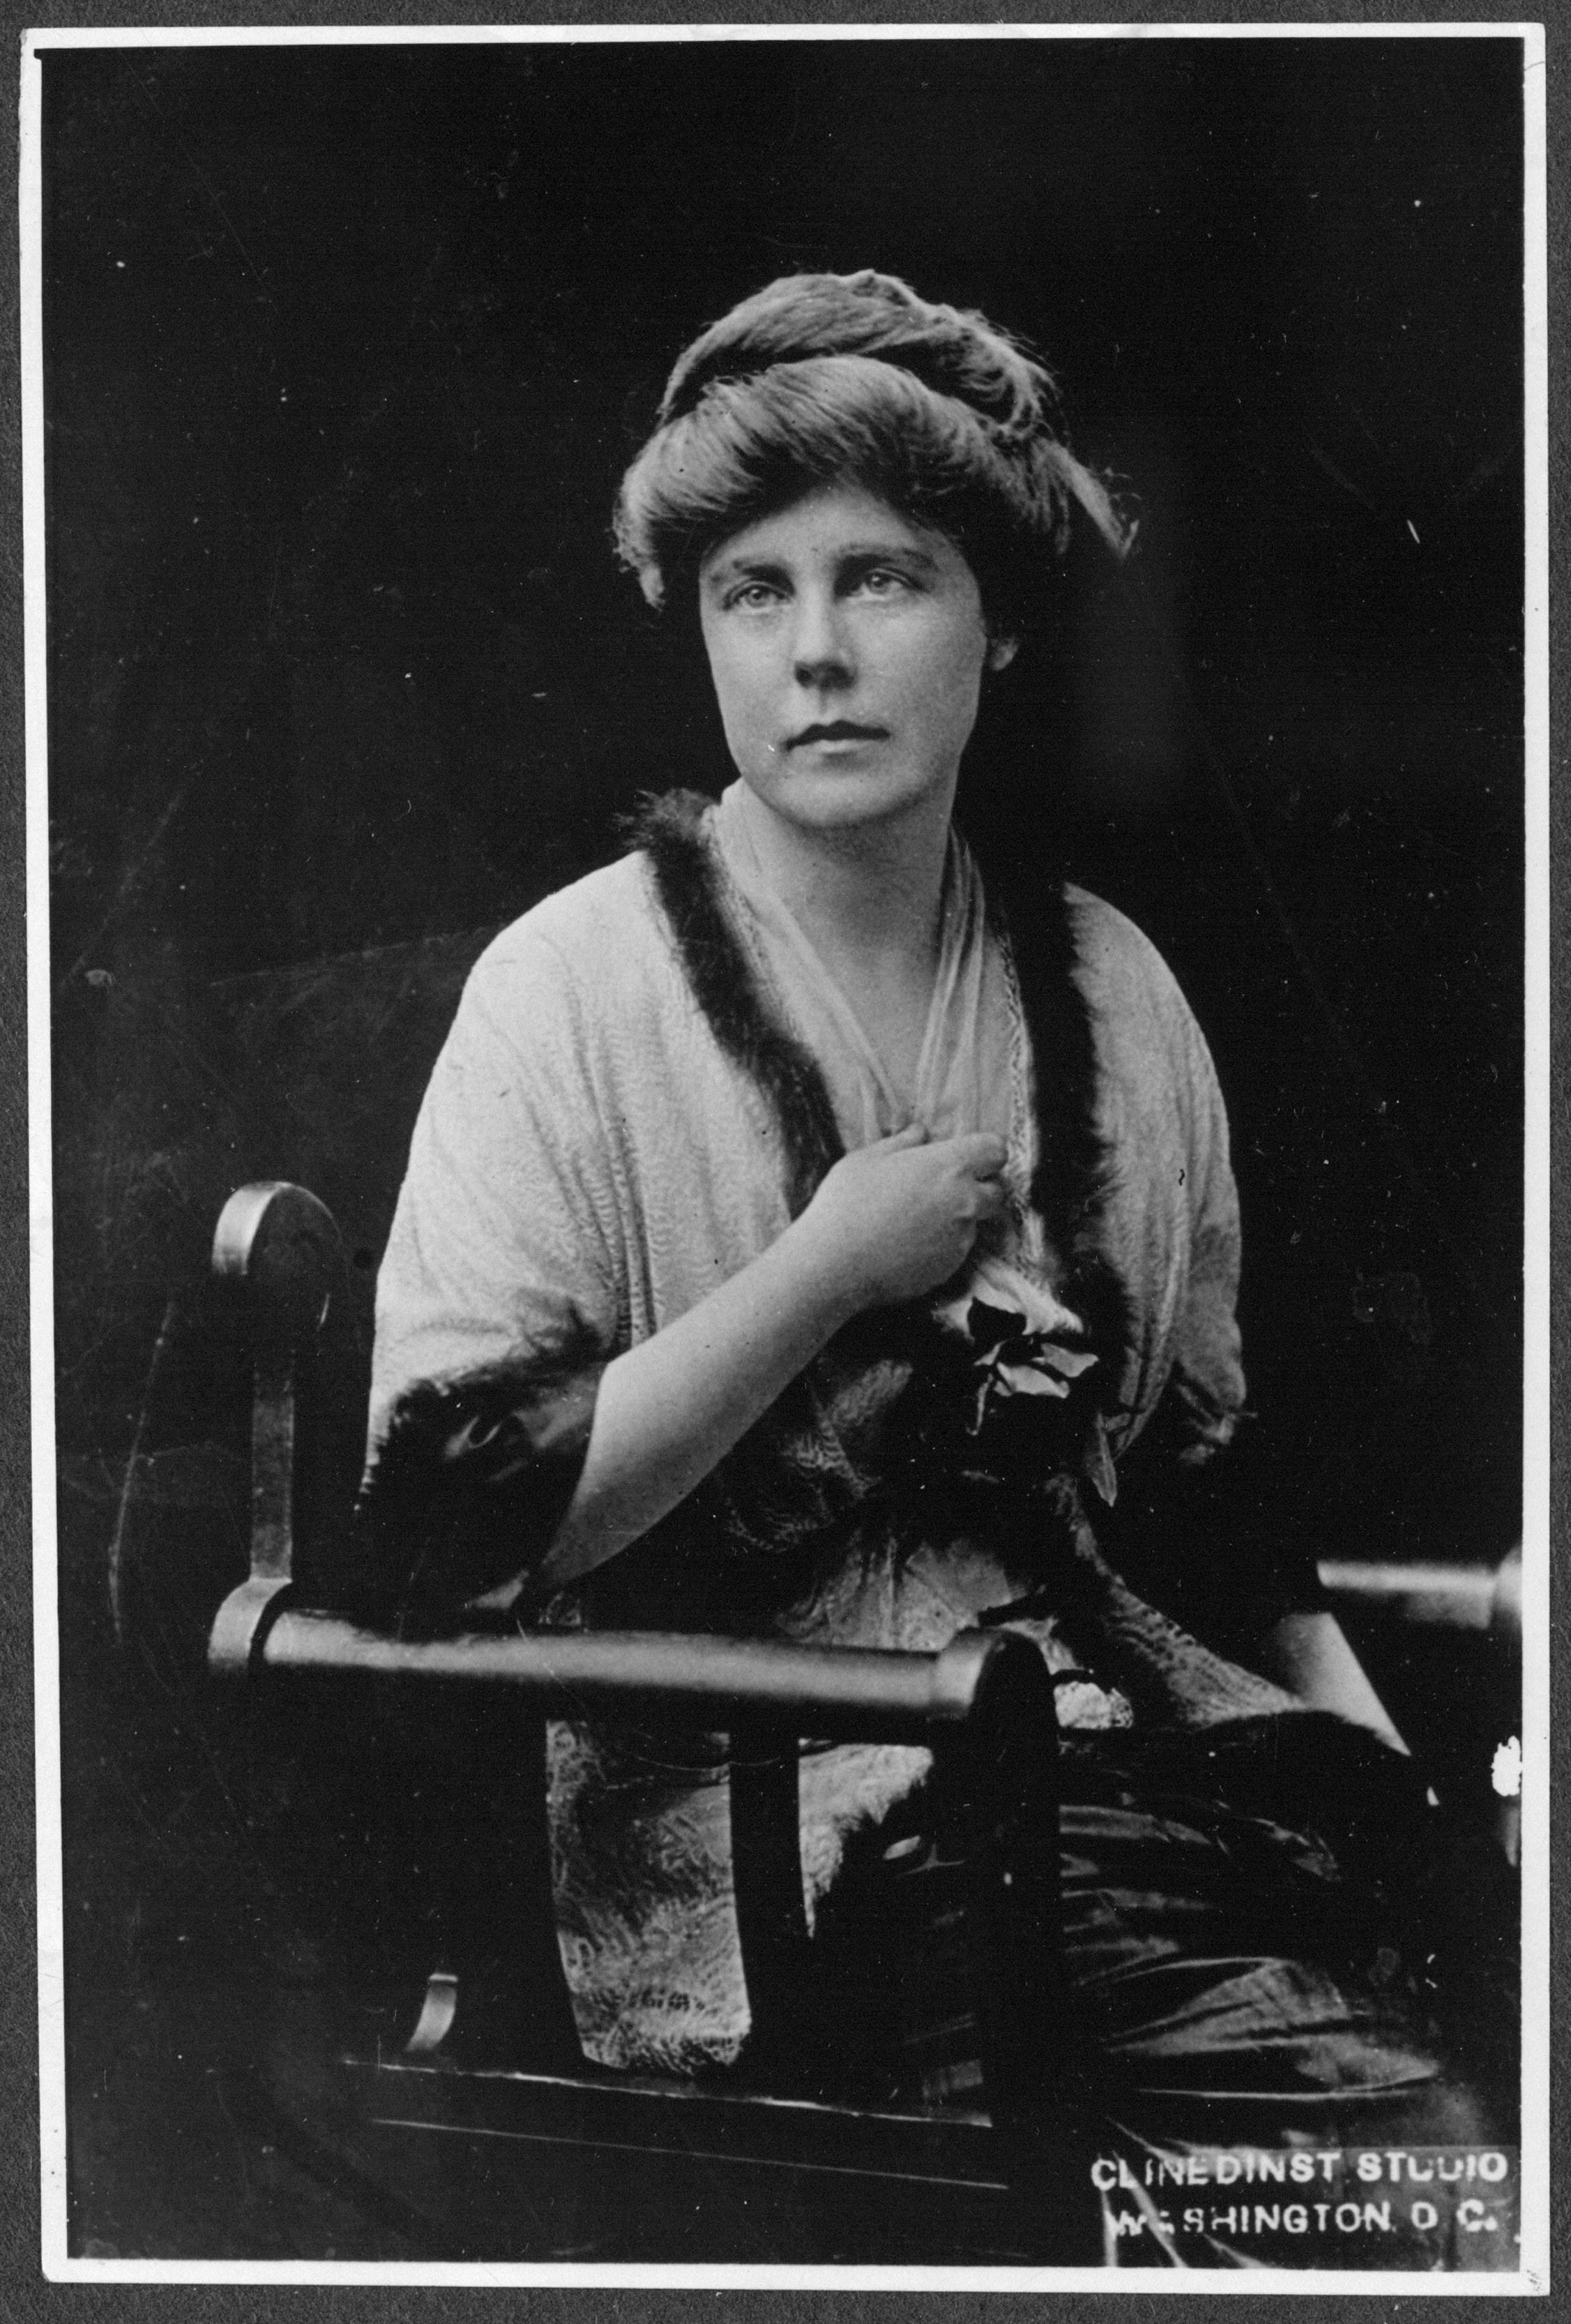 Lucy Burns and Alice Paul founded the National Woman's Party in 1913. While serving the maximum sentence in jail, Burns led many of the hunger strikes among incarcerated Silent Sentinels. Library of Congress.